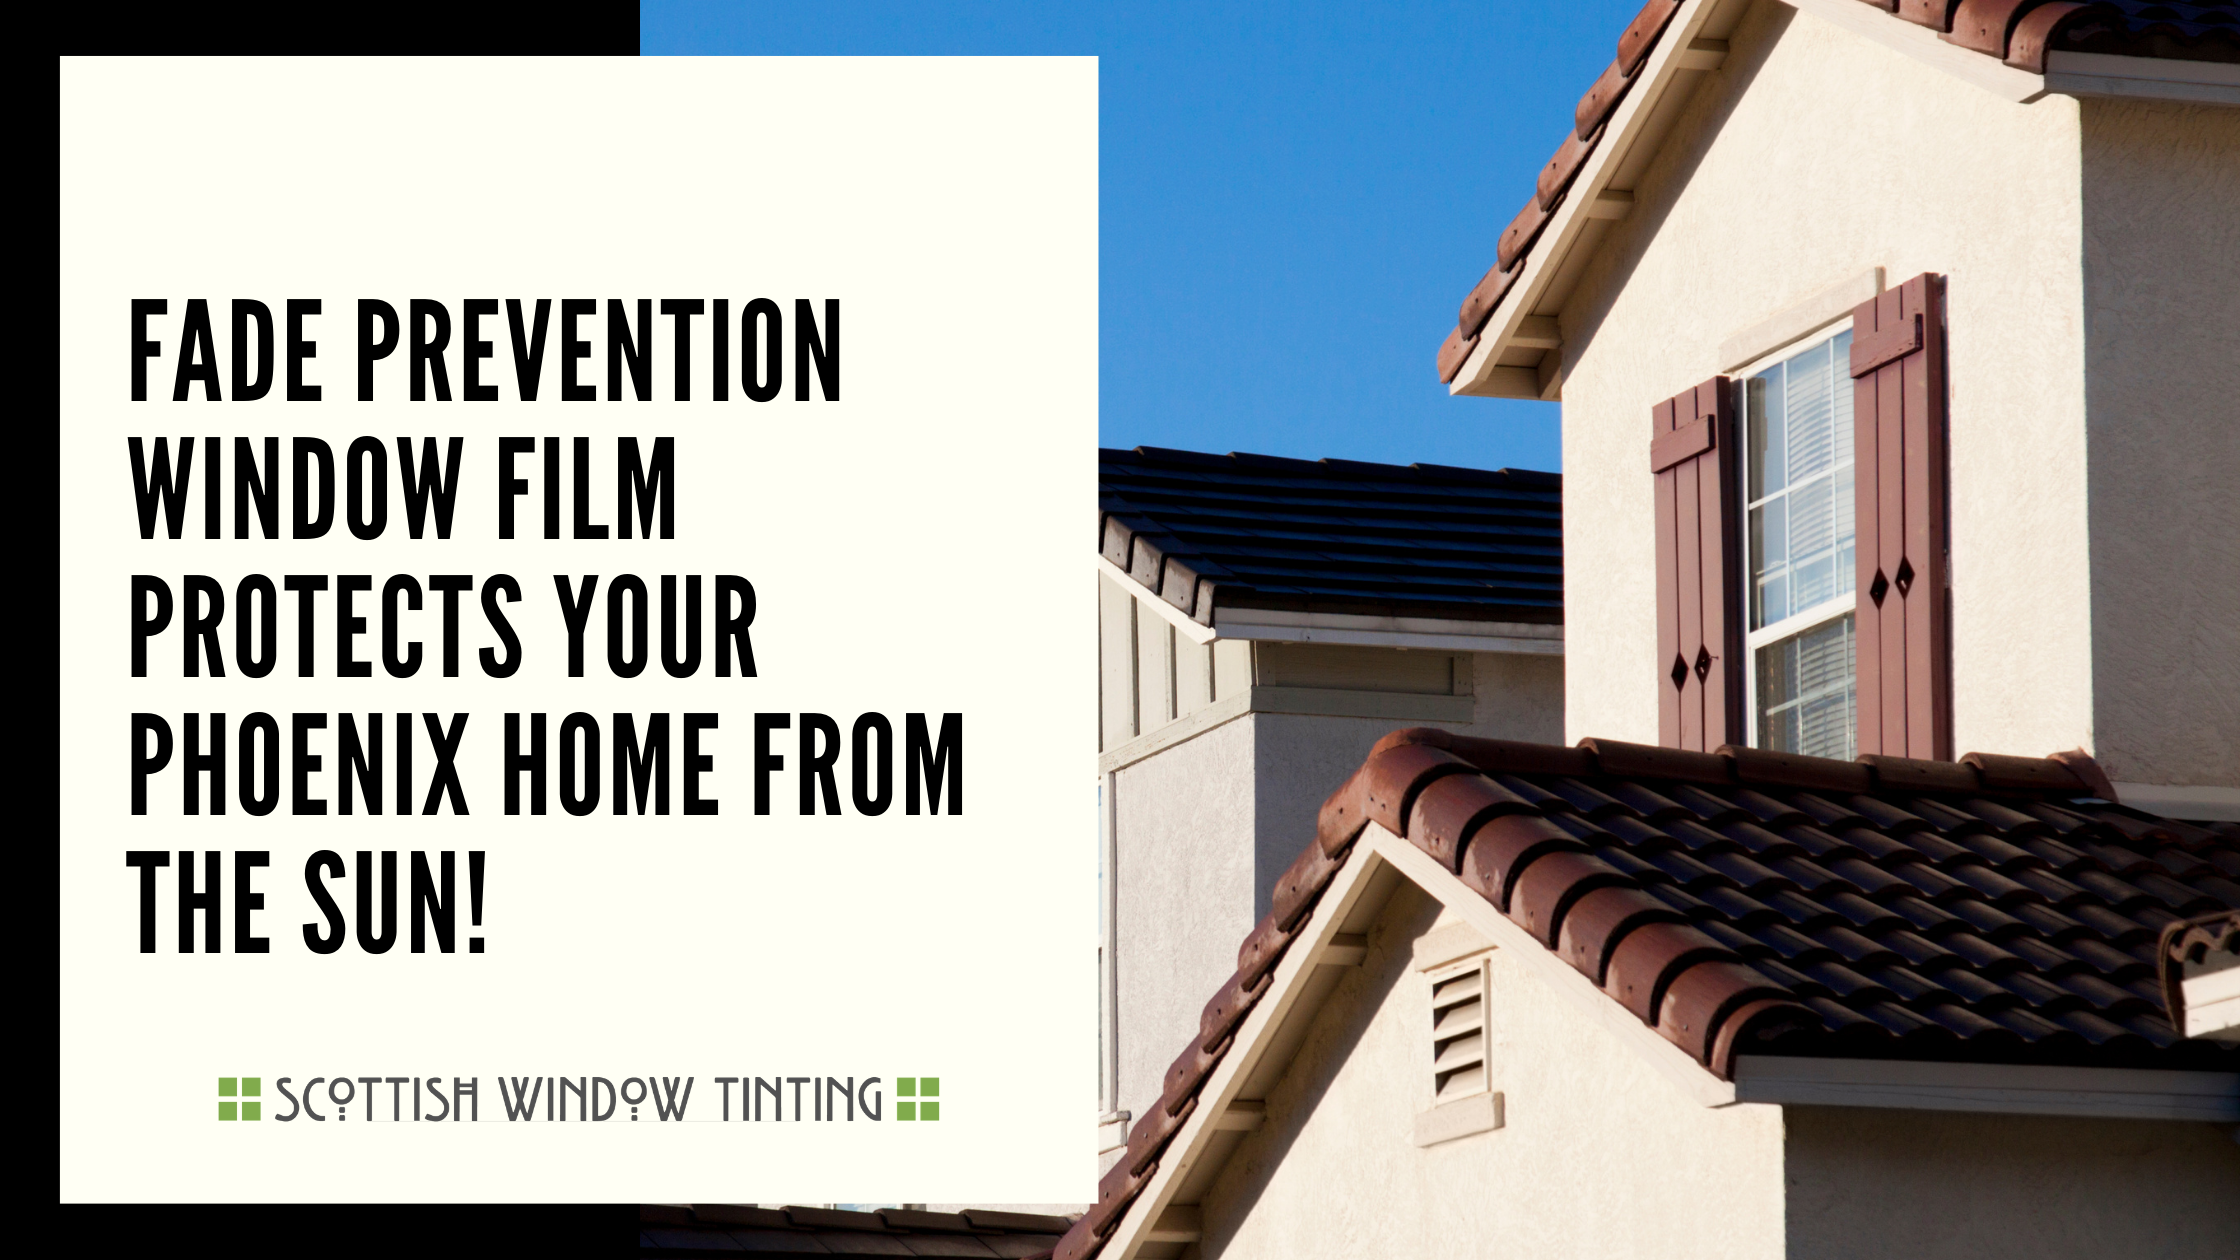 Fade Prevention Window Film Protects Your Phoenix Home from the Sun!